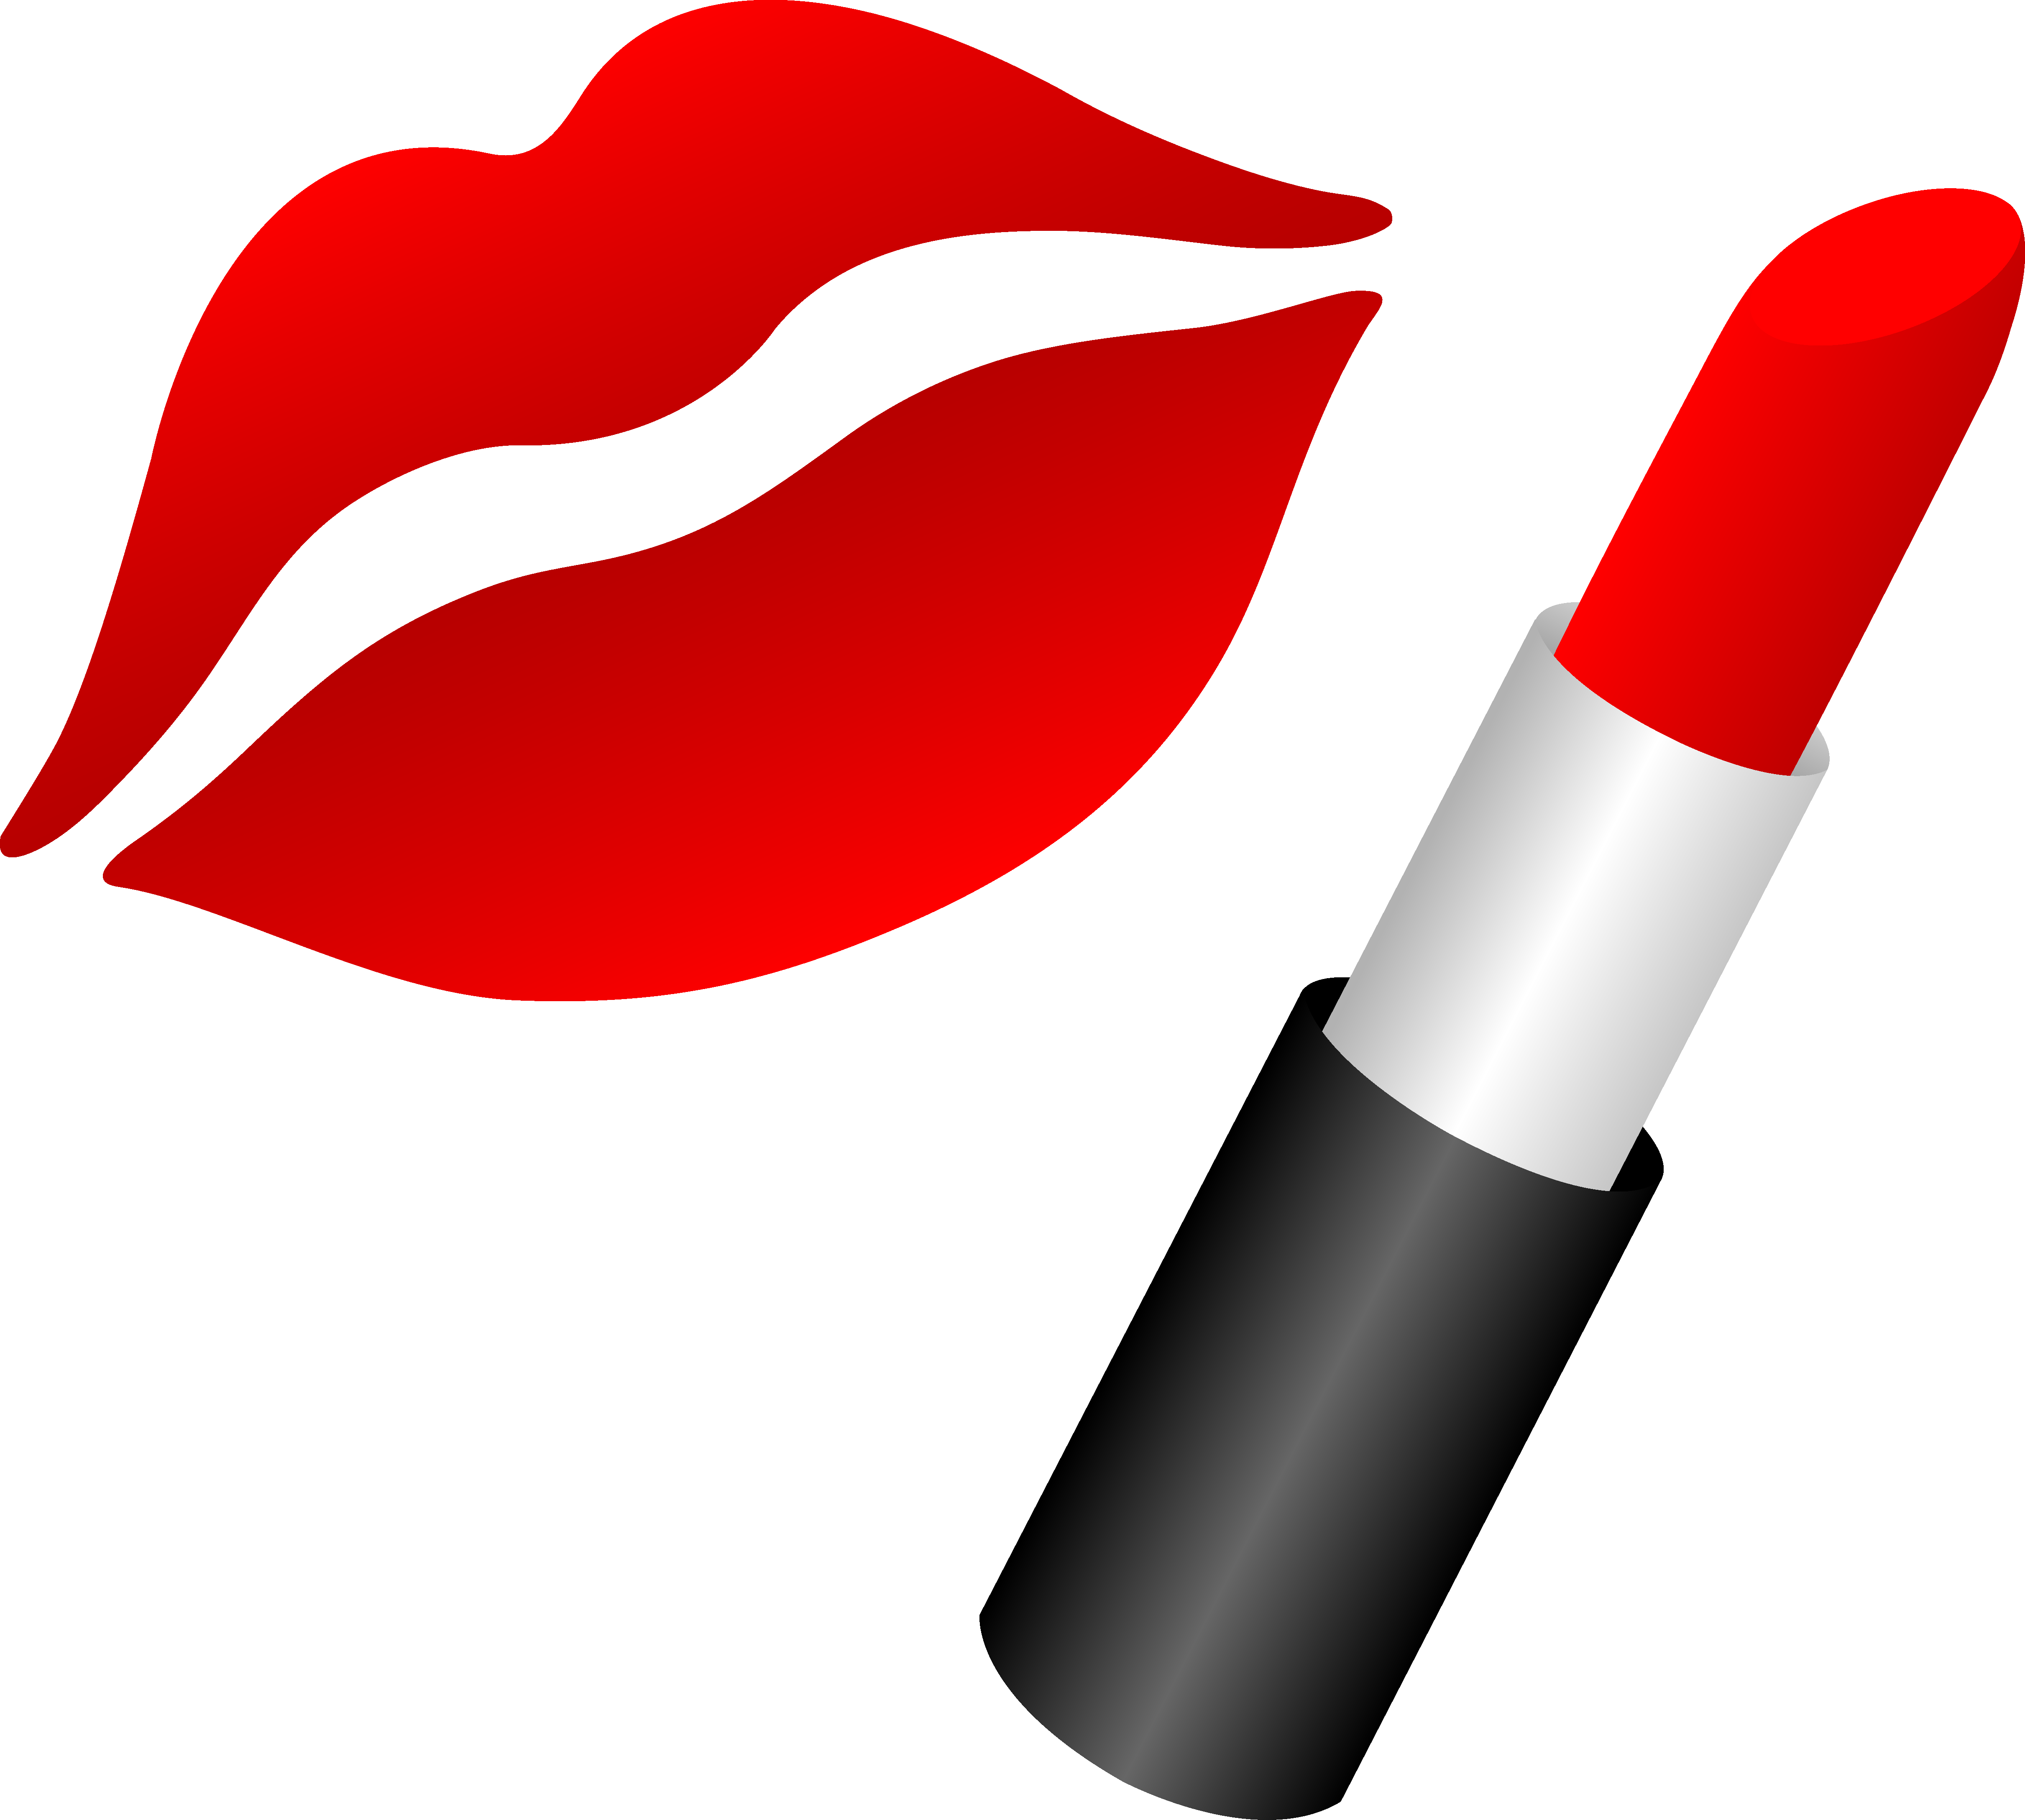 clip art Lipstick clipart. Lips with red free